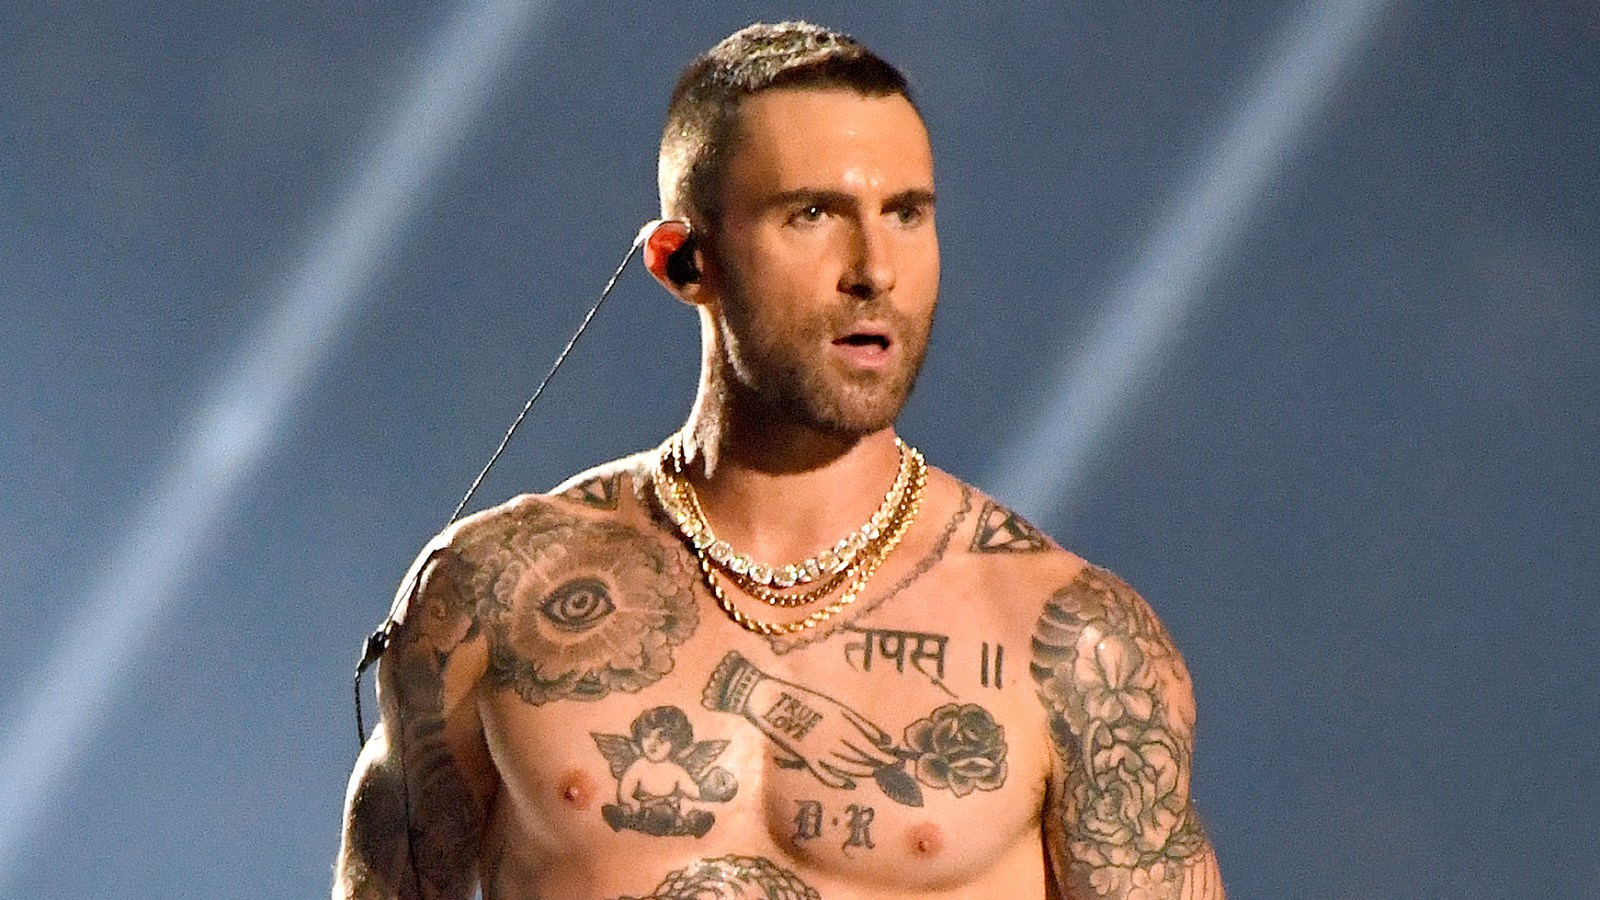 d9b56174 Twitter Is Convinced Adam Levine's Chest Tattoo Spells 'Bro' With His Nipple  as the 'O'